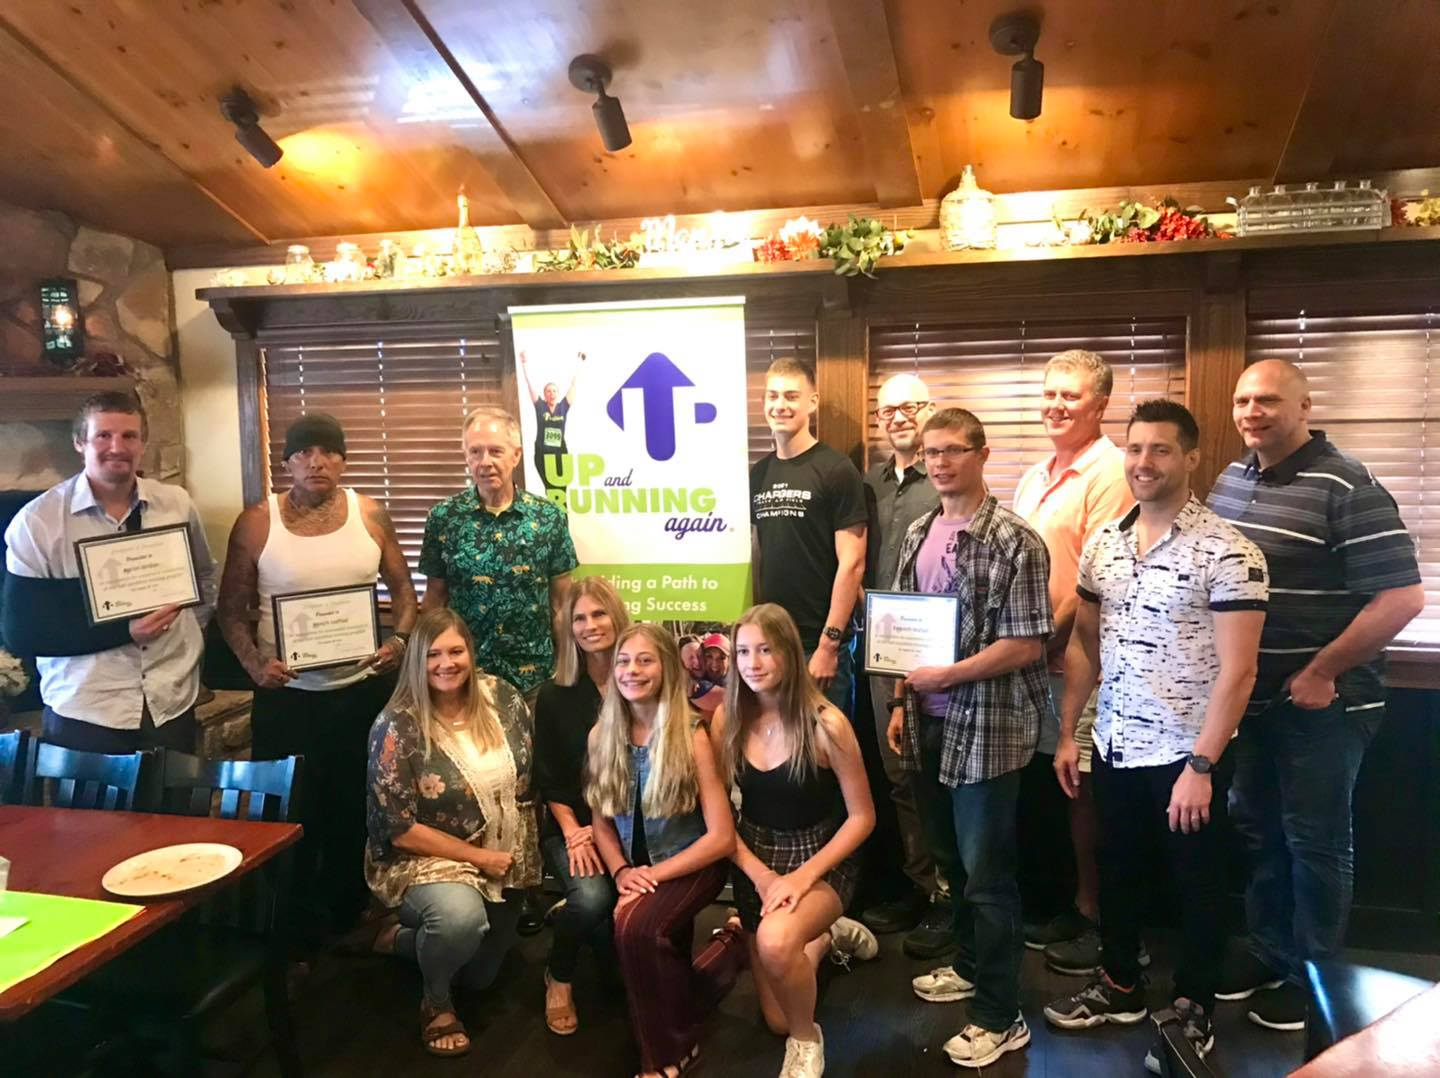 Congratulations to all of the Sioux Falls runners who completed the Up And Running Again training program and Half Marathon. This is a collaborative group through 605 Running Company, UGM & Glory House